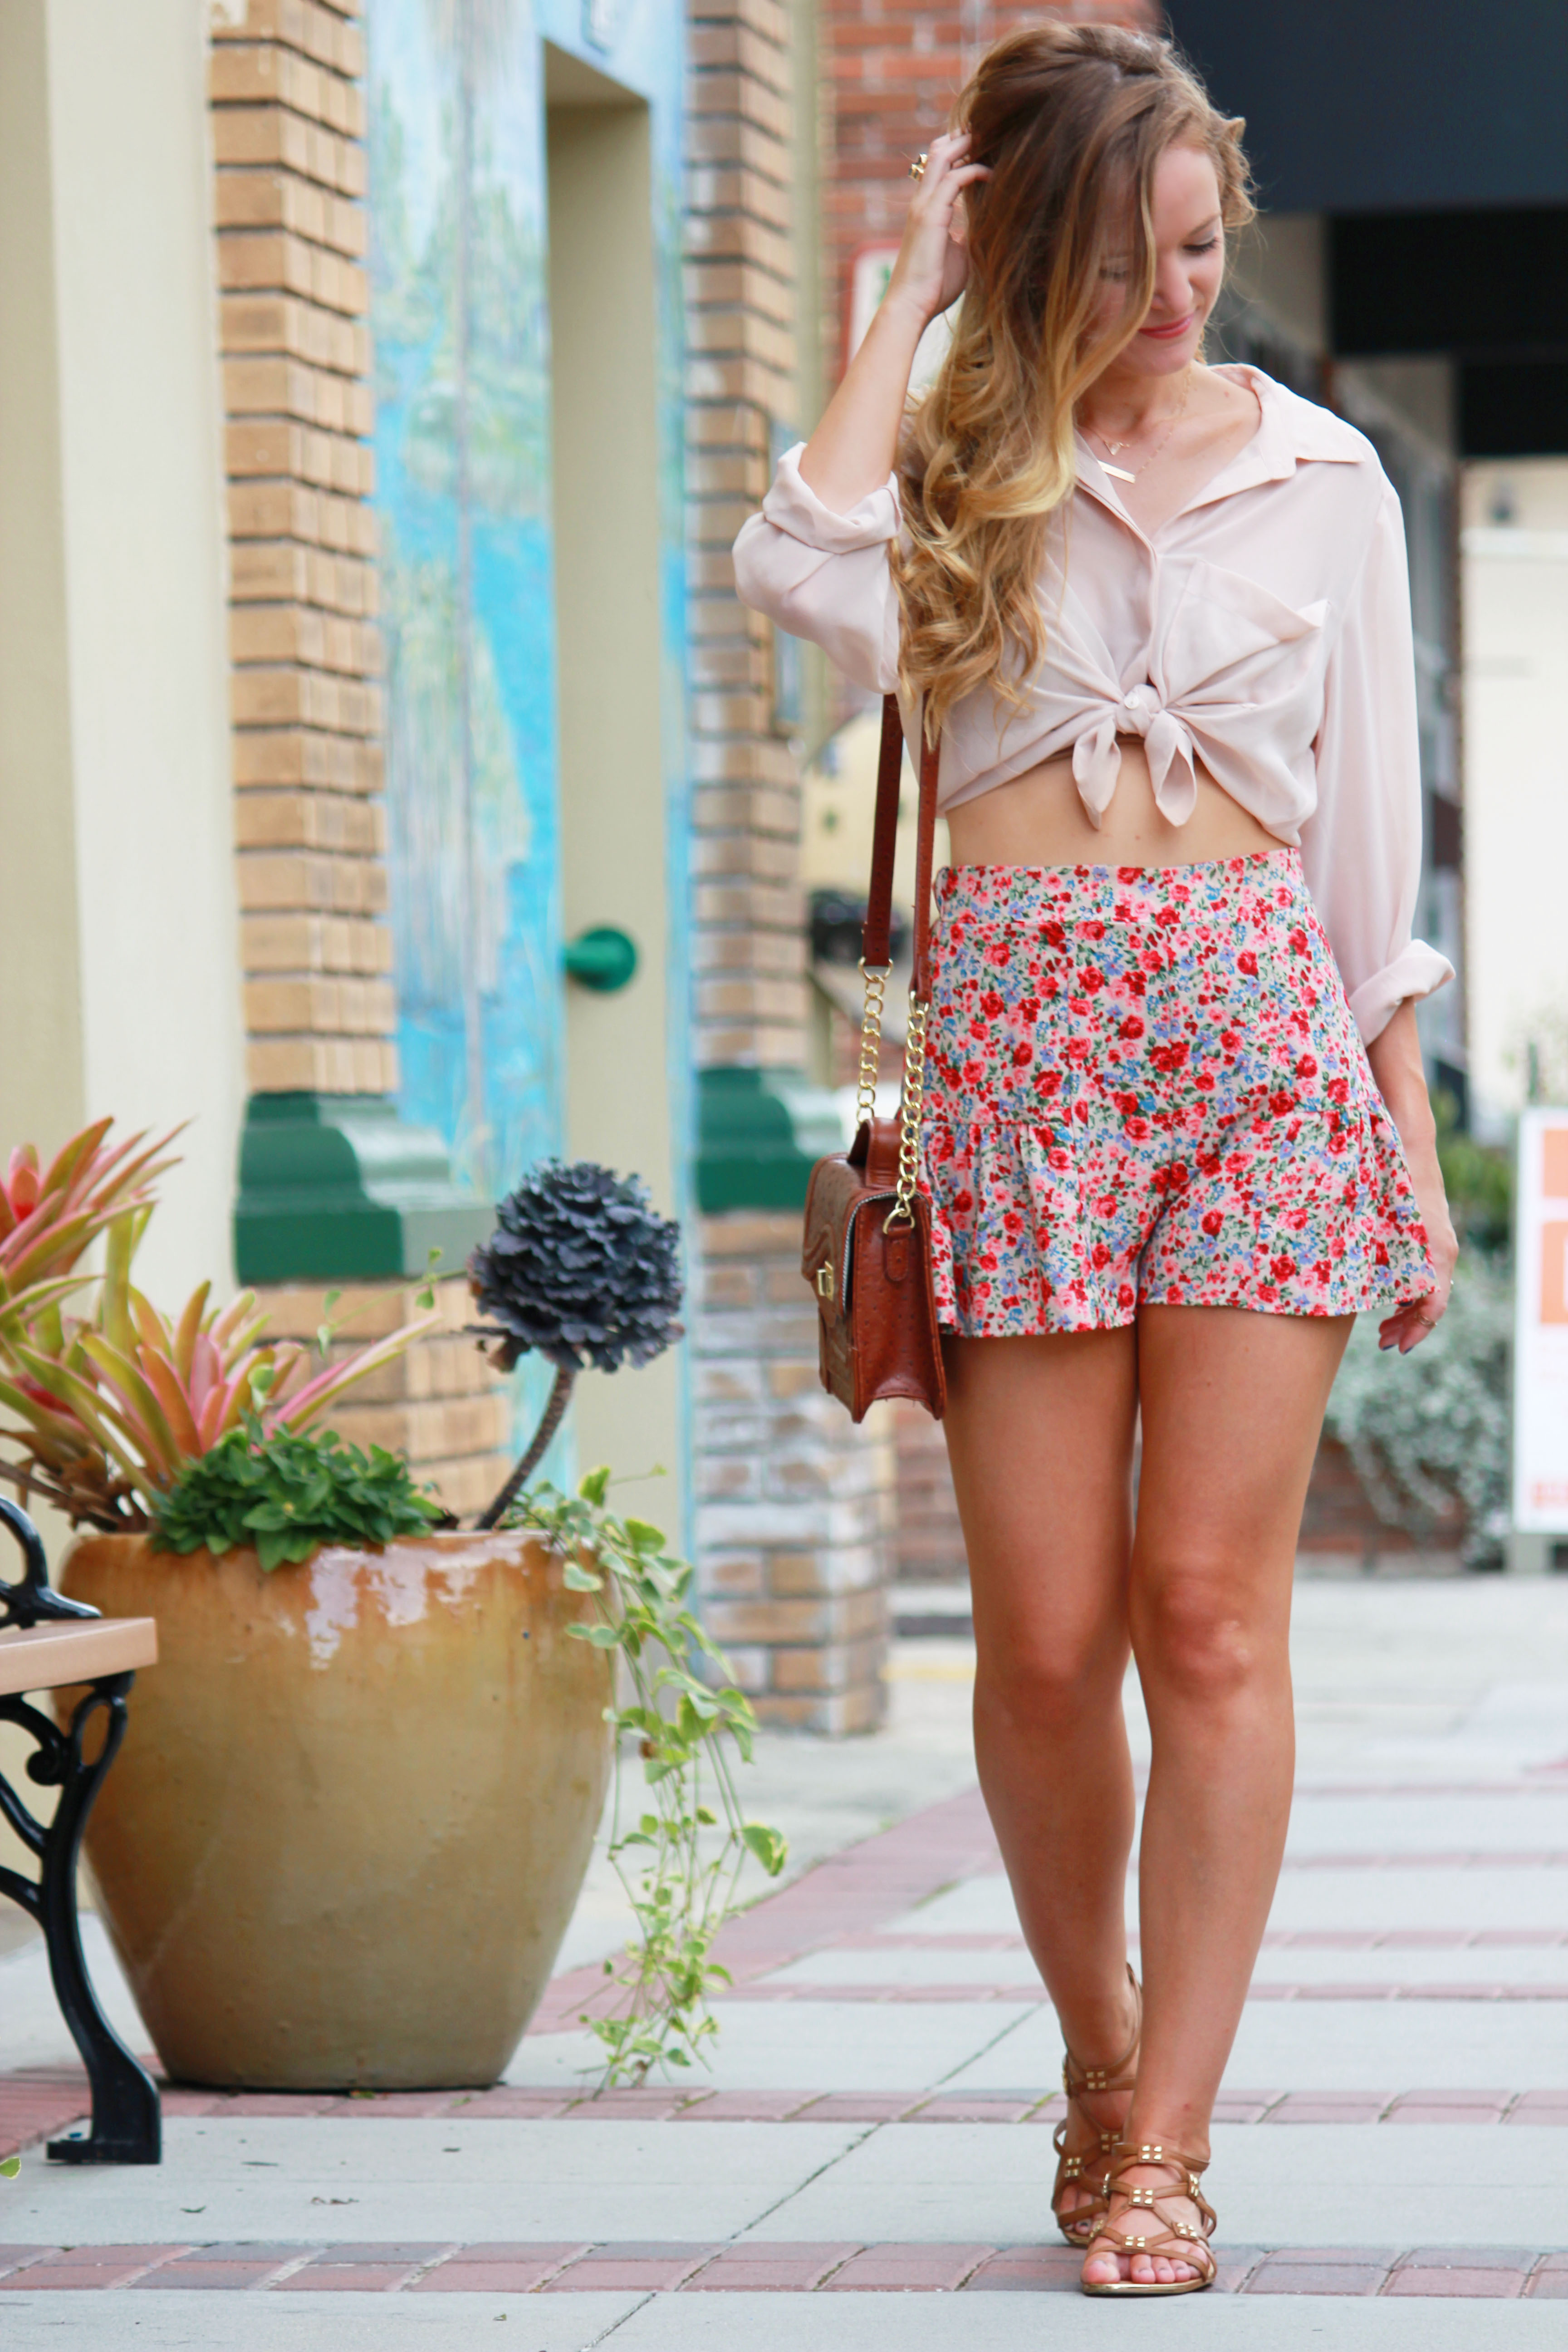 casual summer outfit, blush boutique shorts, tjmaxx crossbody, tjmaxx sandals, isola sandals, layered necklace, warm weather outfit